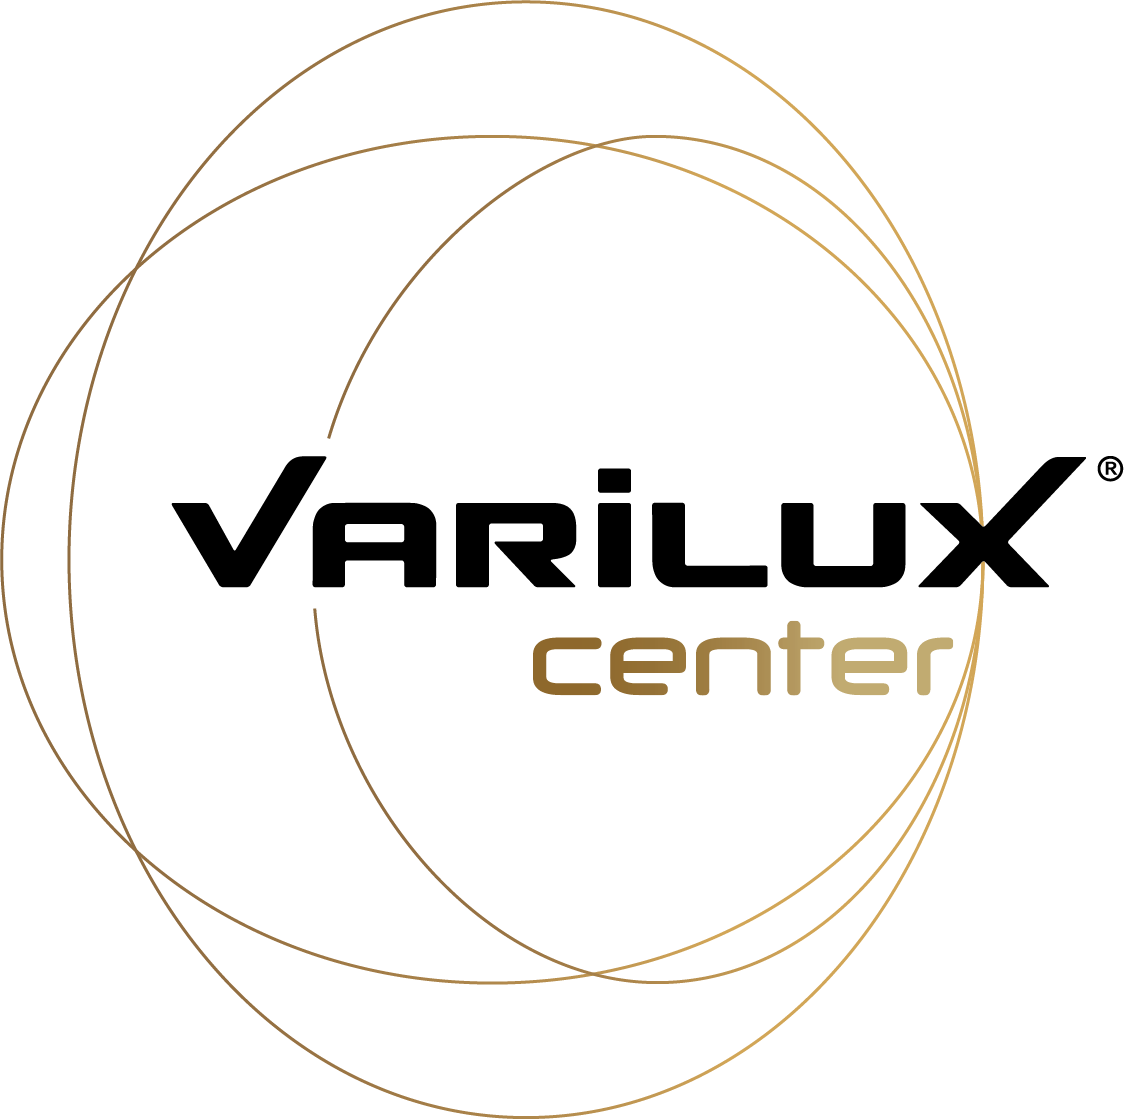 Varilux Center logo